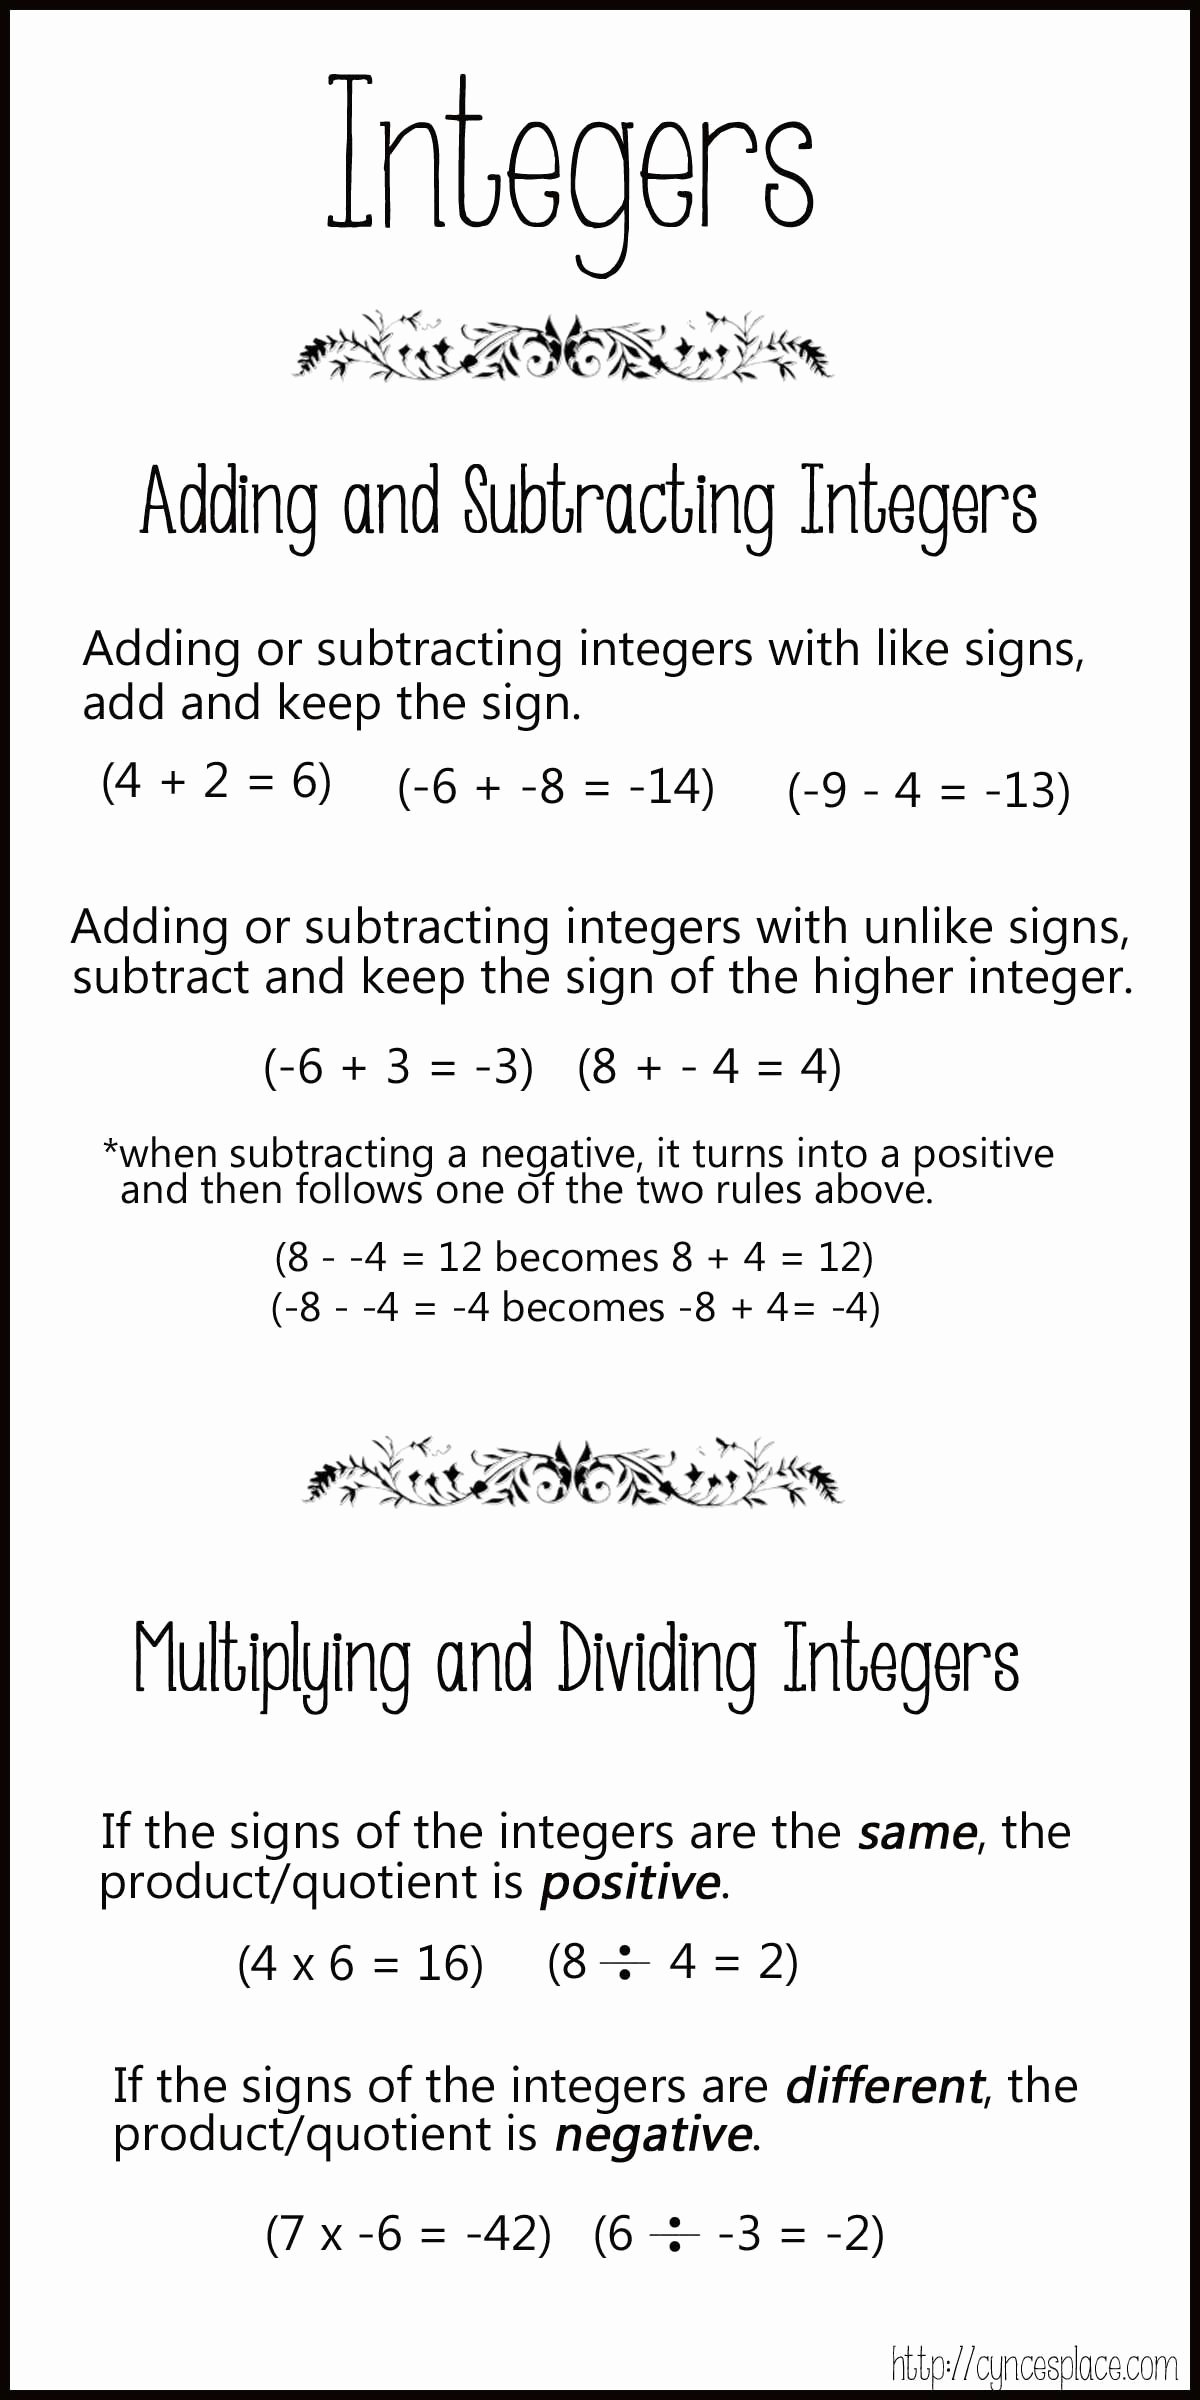 Multiply and Divide Integers Worksheet New Adding Subtracting Multiplying and Dividing Integers Chart